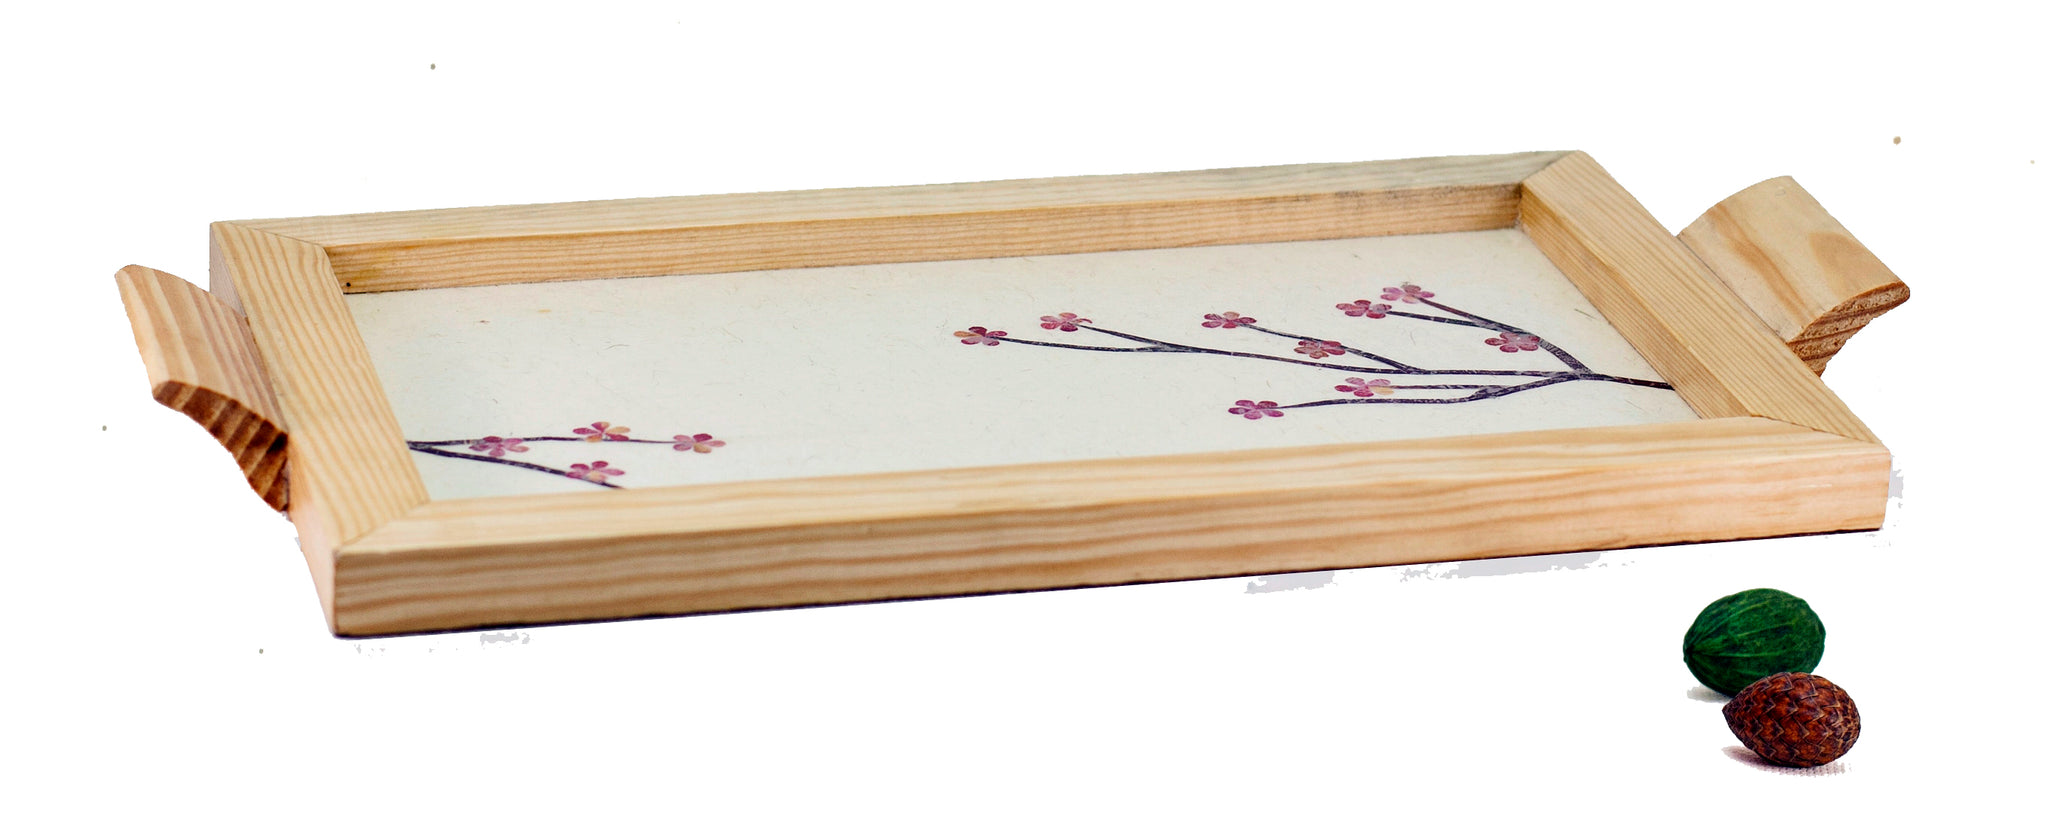 Small Floral Wooden Tray Handmade by Women Artisans